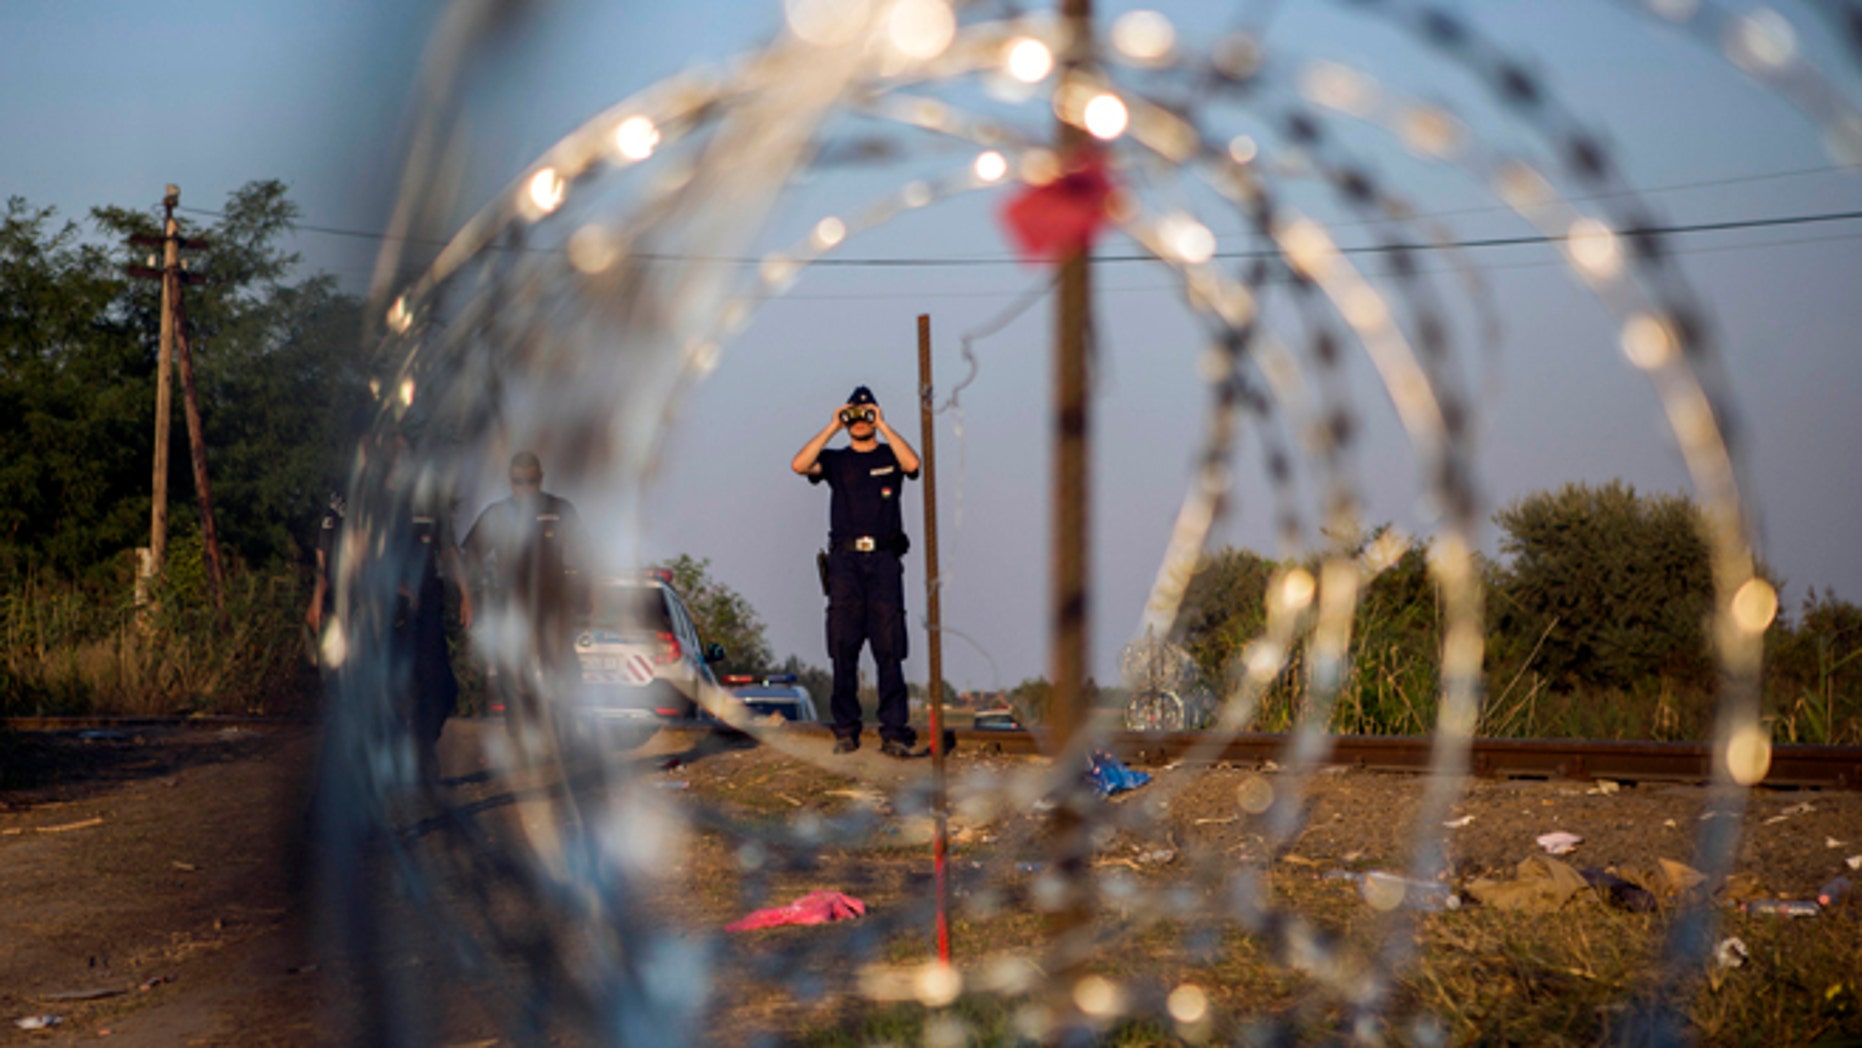 FILE - In this Tuesday, Sept. 1, 2015 file photo, a Hungarian police officer looks through binoculars as he checks the border for refugees entering the country illegally next to the town of Roszke, Hungary. In the 28-nation EU, some countries have sought to block the unprecedented flow of migrants fleeing war or poverty in the Middle East and Africa. (AP Photo/Santi Palacios, File)